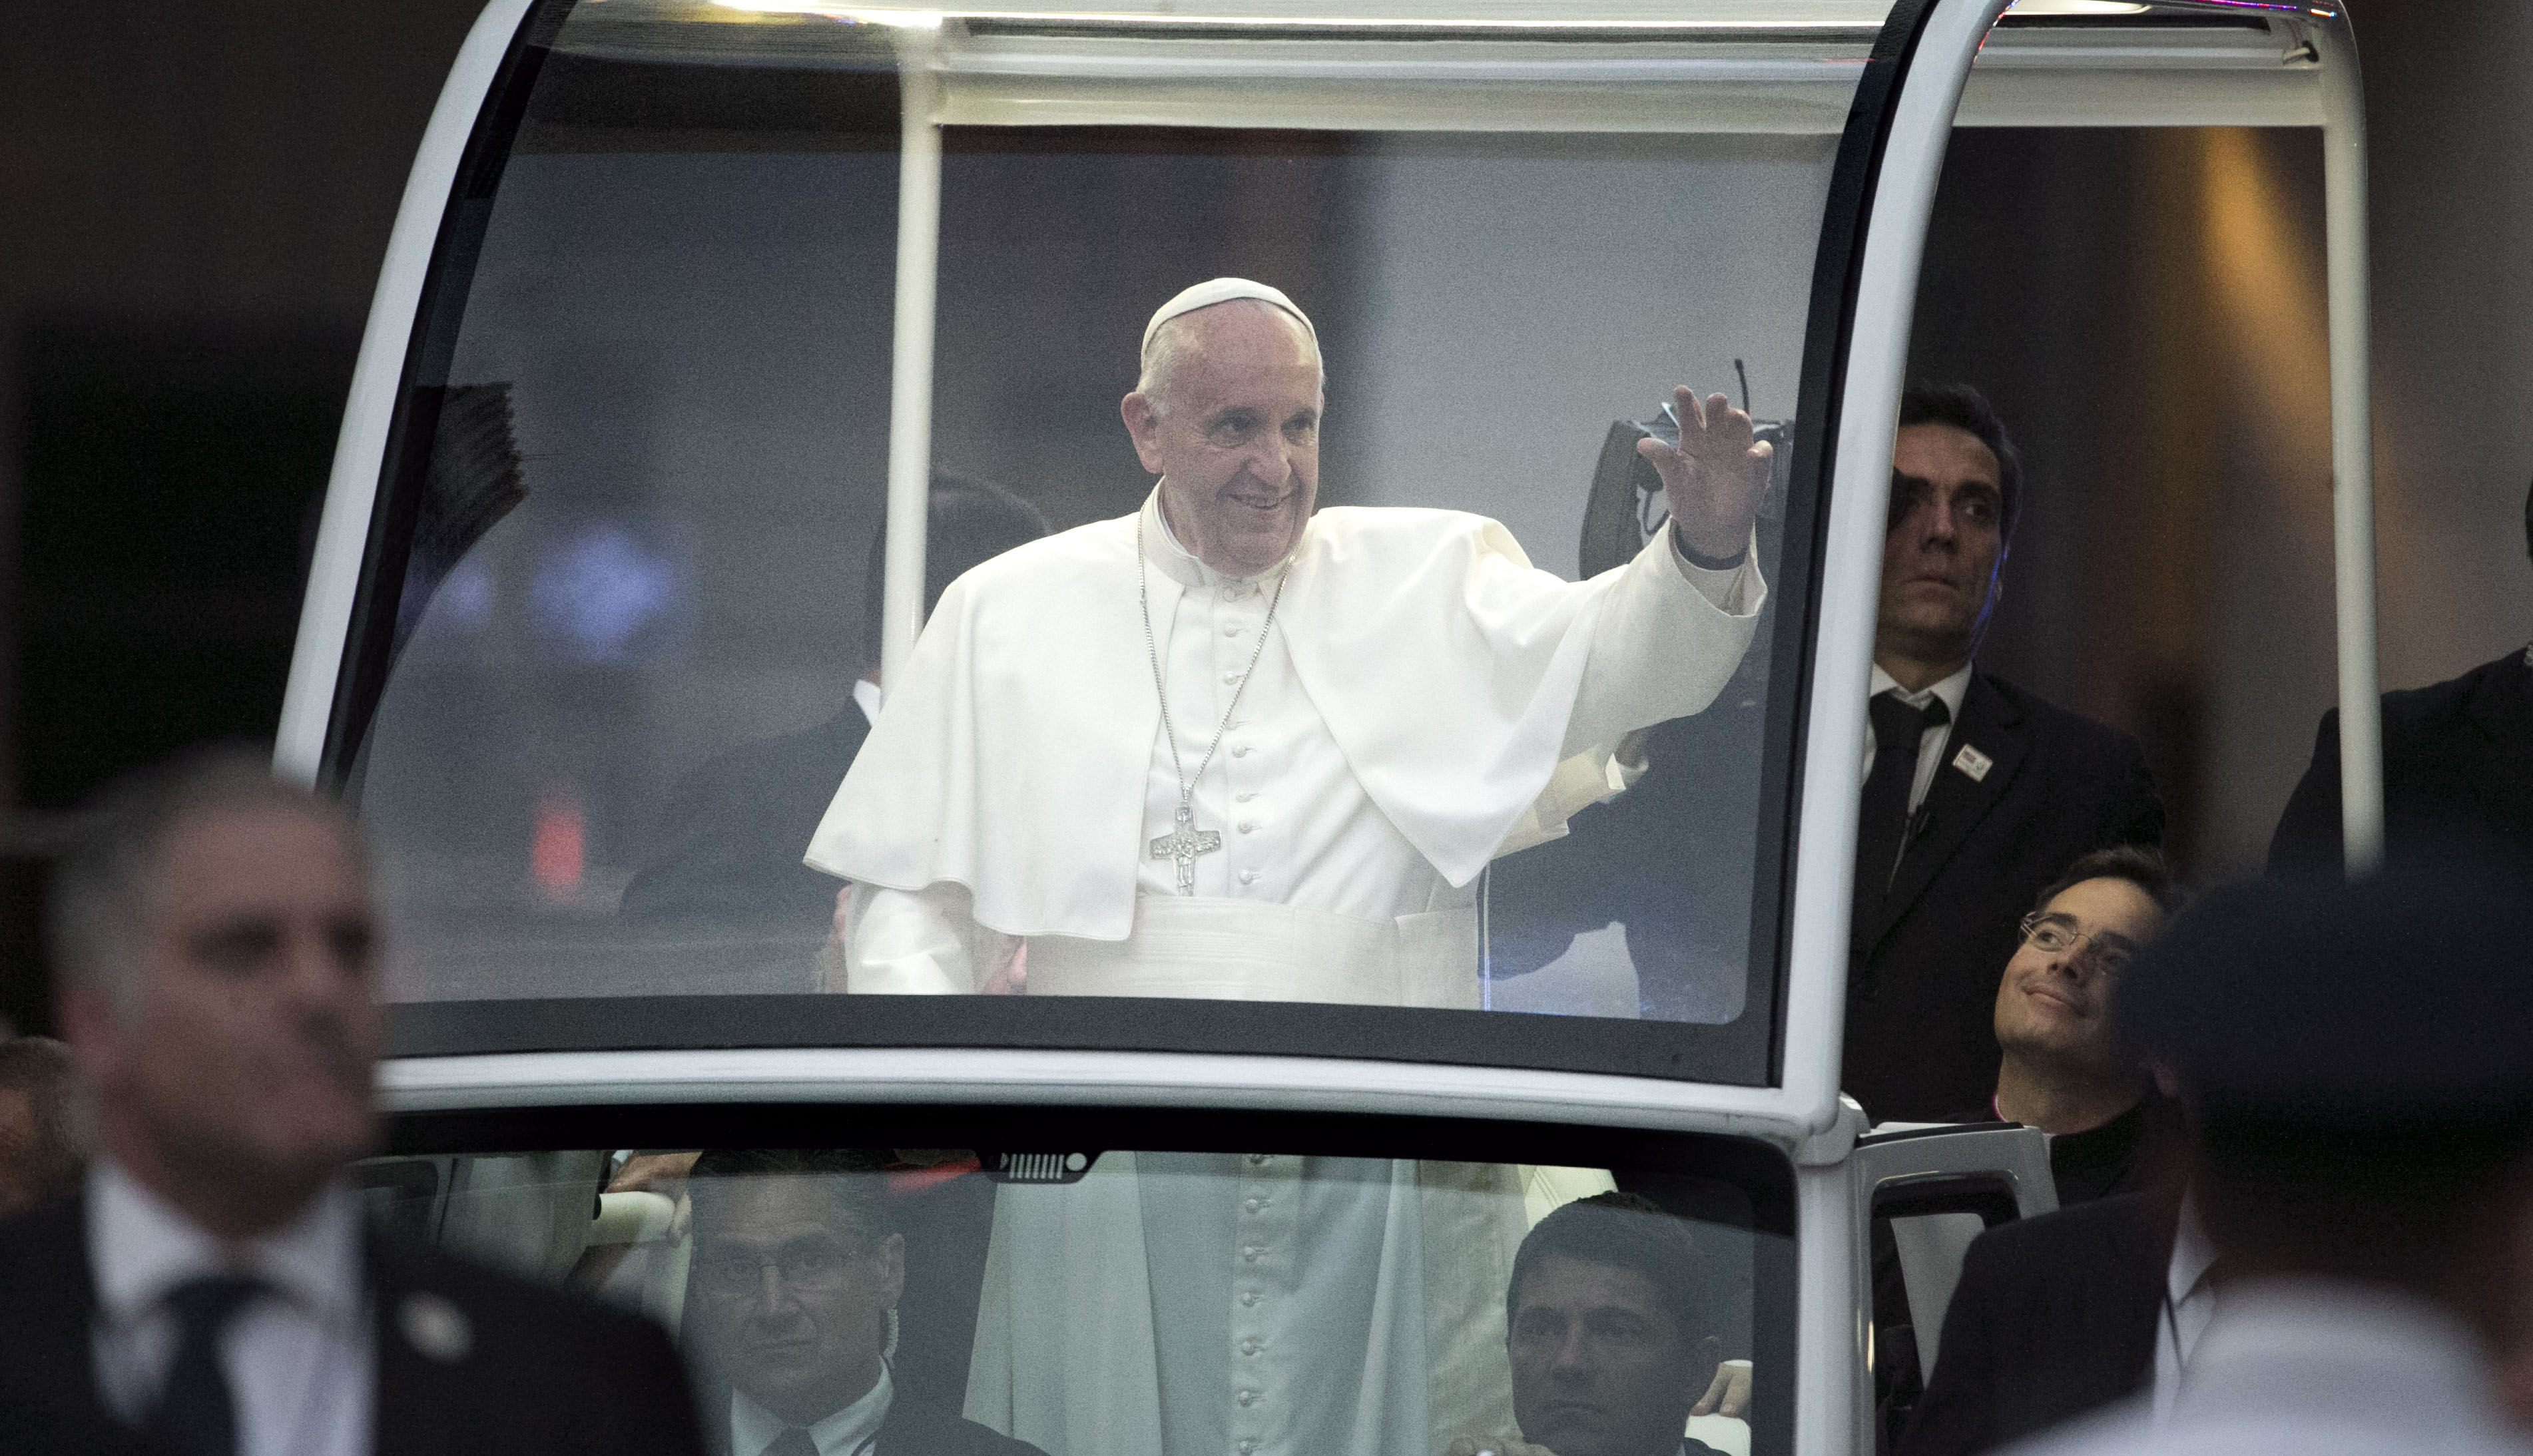 Pope Francis waves to people gathered on the street as he is driven through New York City to St. Patrick's Cathedral to conduct an evening prayer service, Thursday, Sept. 14, 2015. (Aristide Economopoulos/The Star Ledger via AP, Pool)